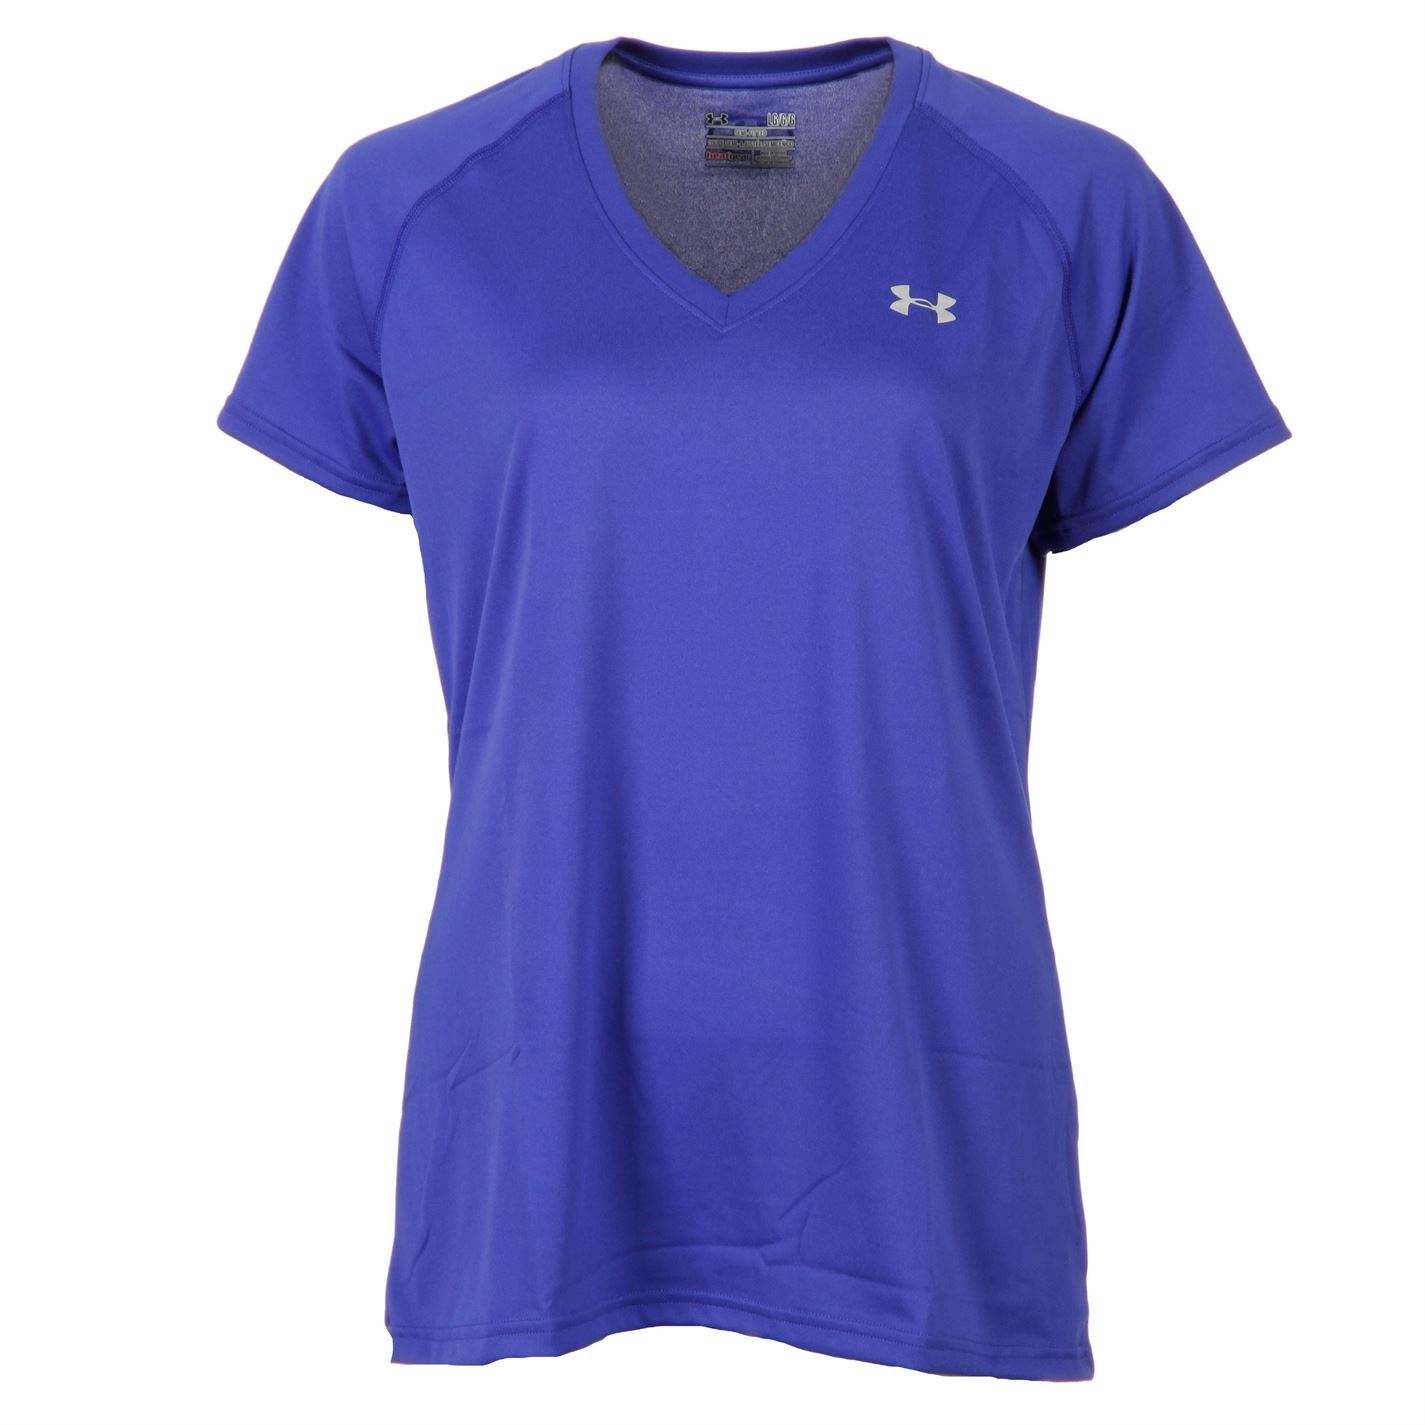 Under armour womens ladies tech ss short sleeves v neck t for Under armour women s twisted tech t shirt